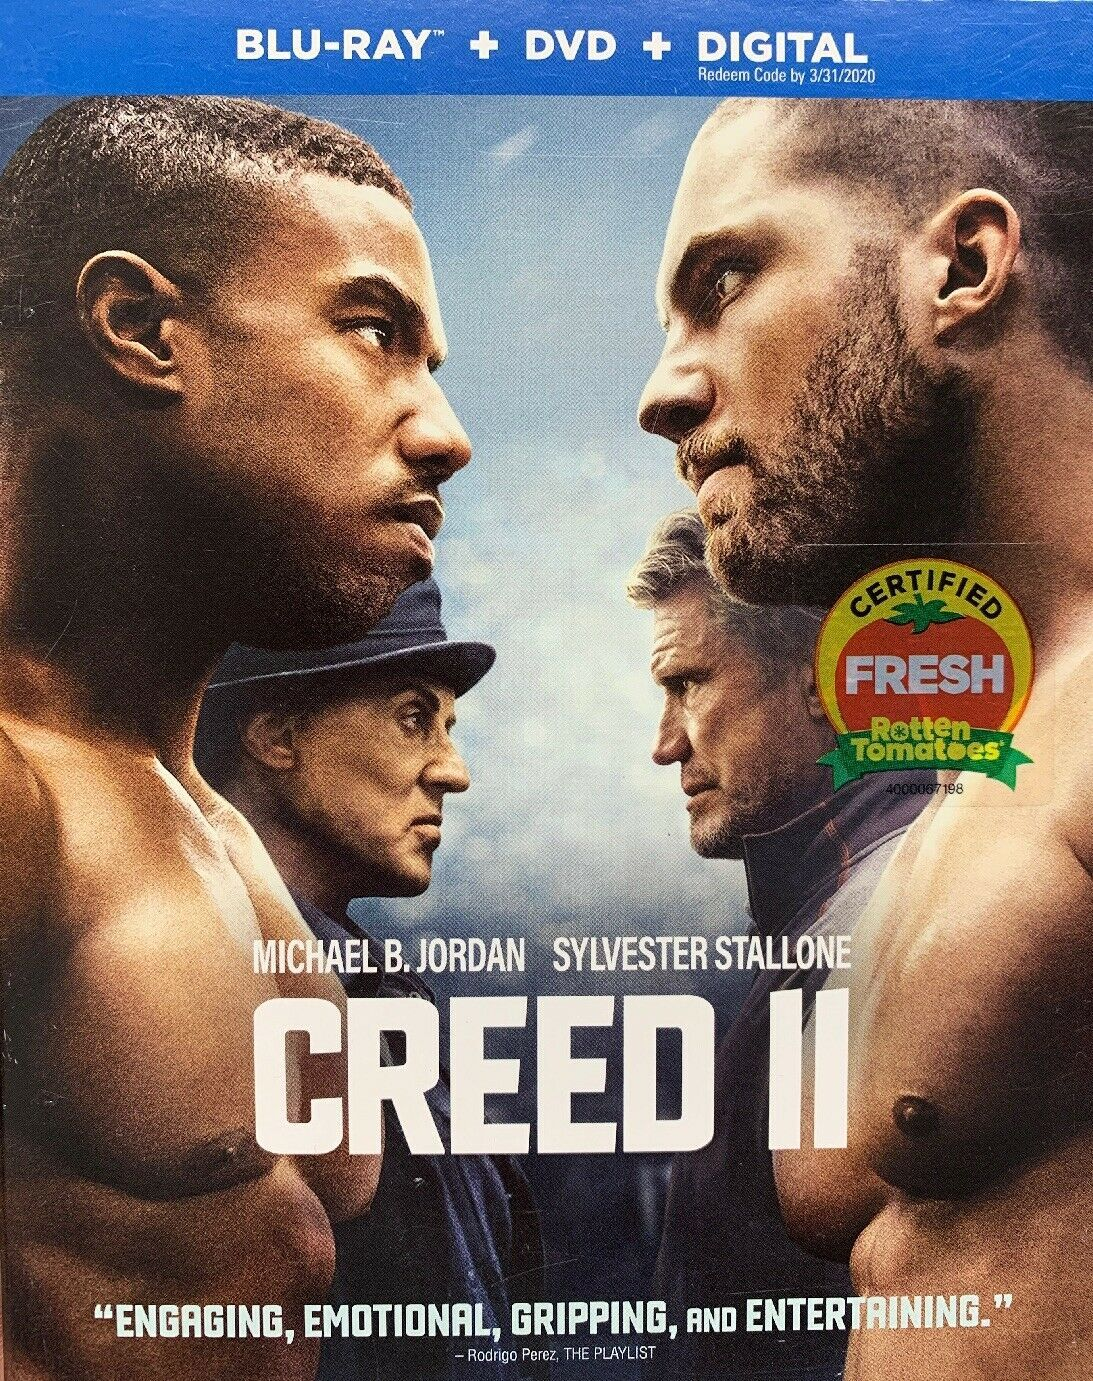 Creed 2 (Blu-ray + DVD + Digital, 2019)